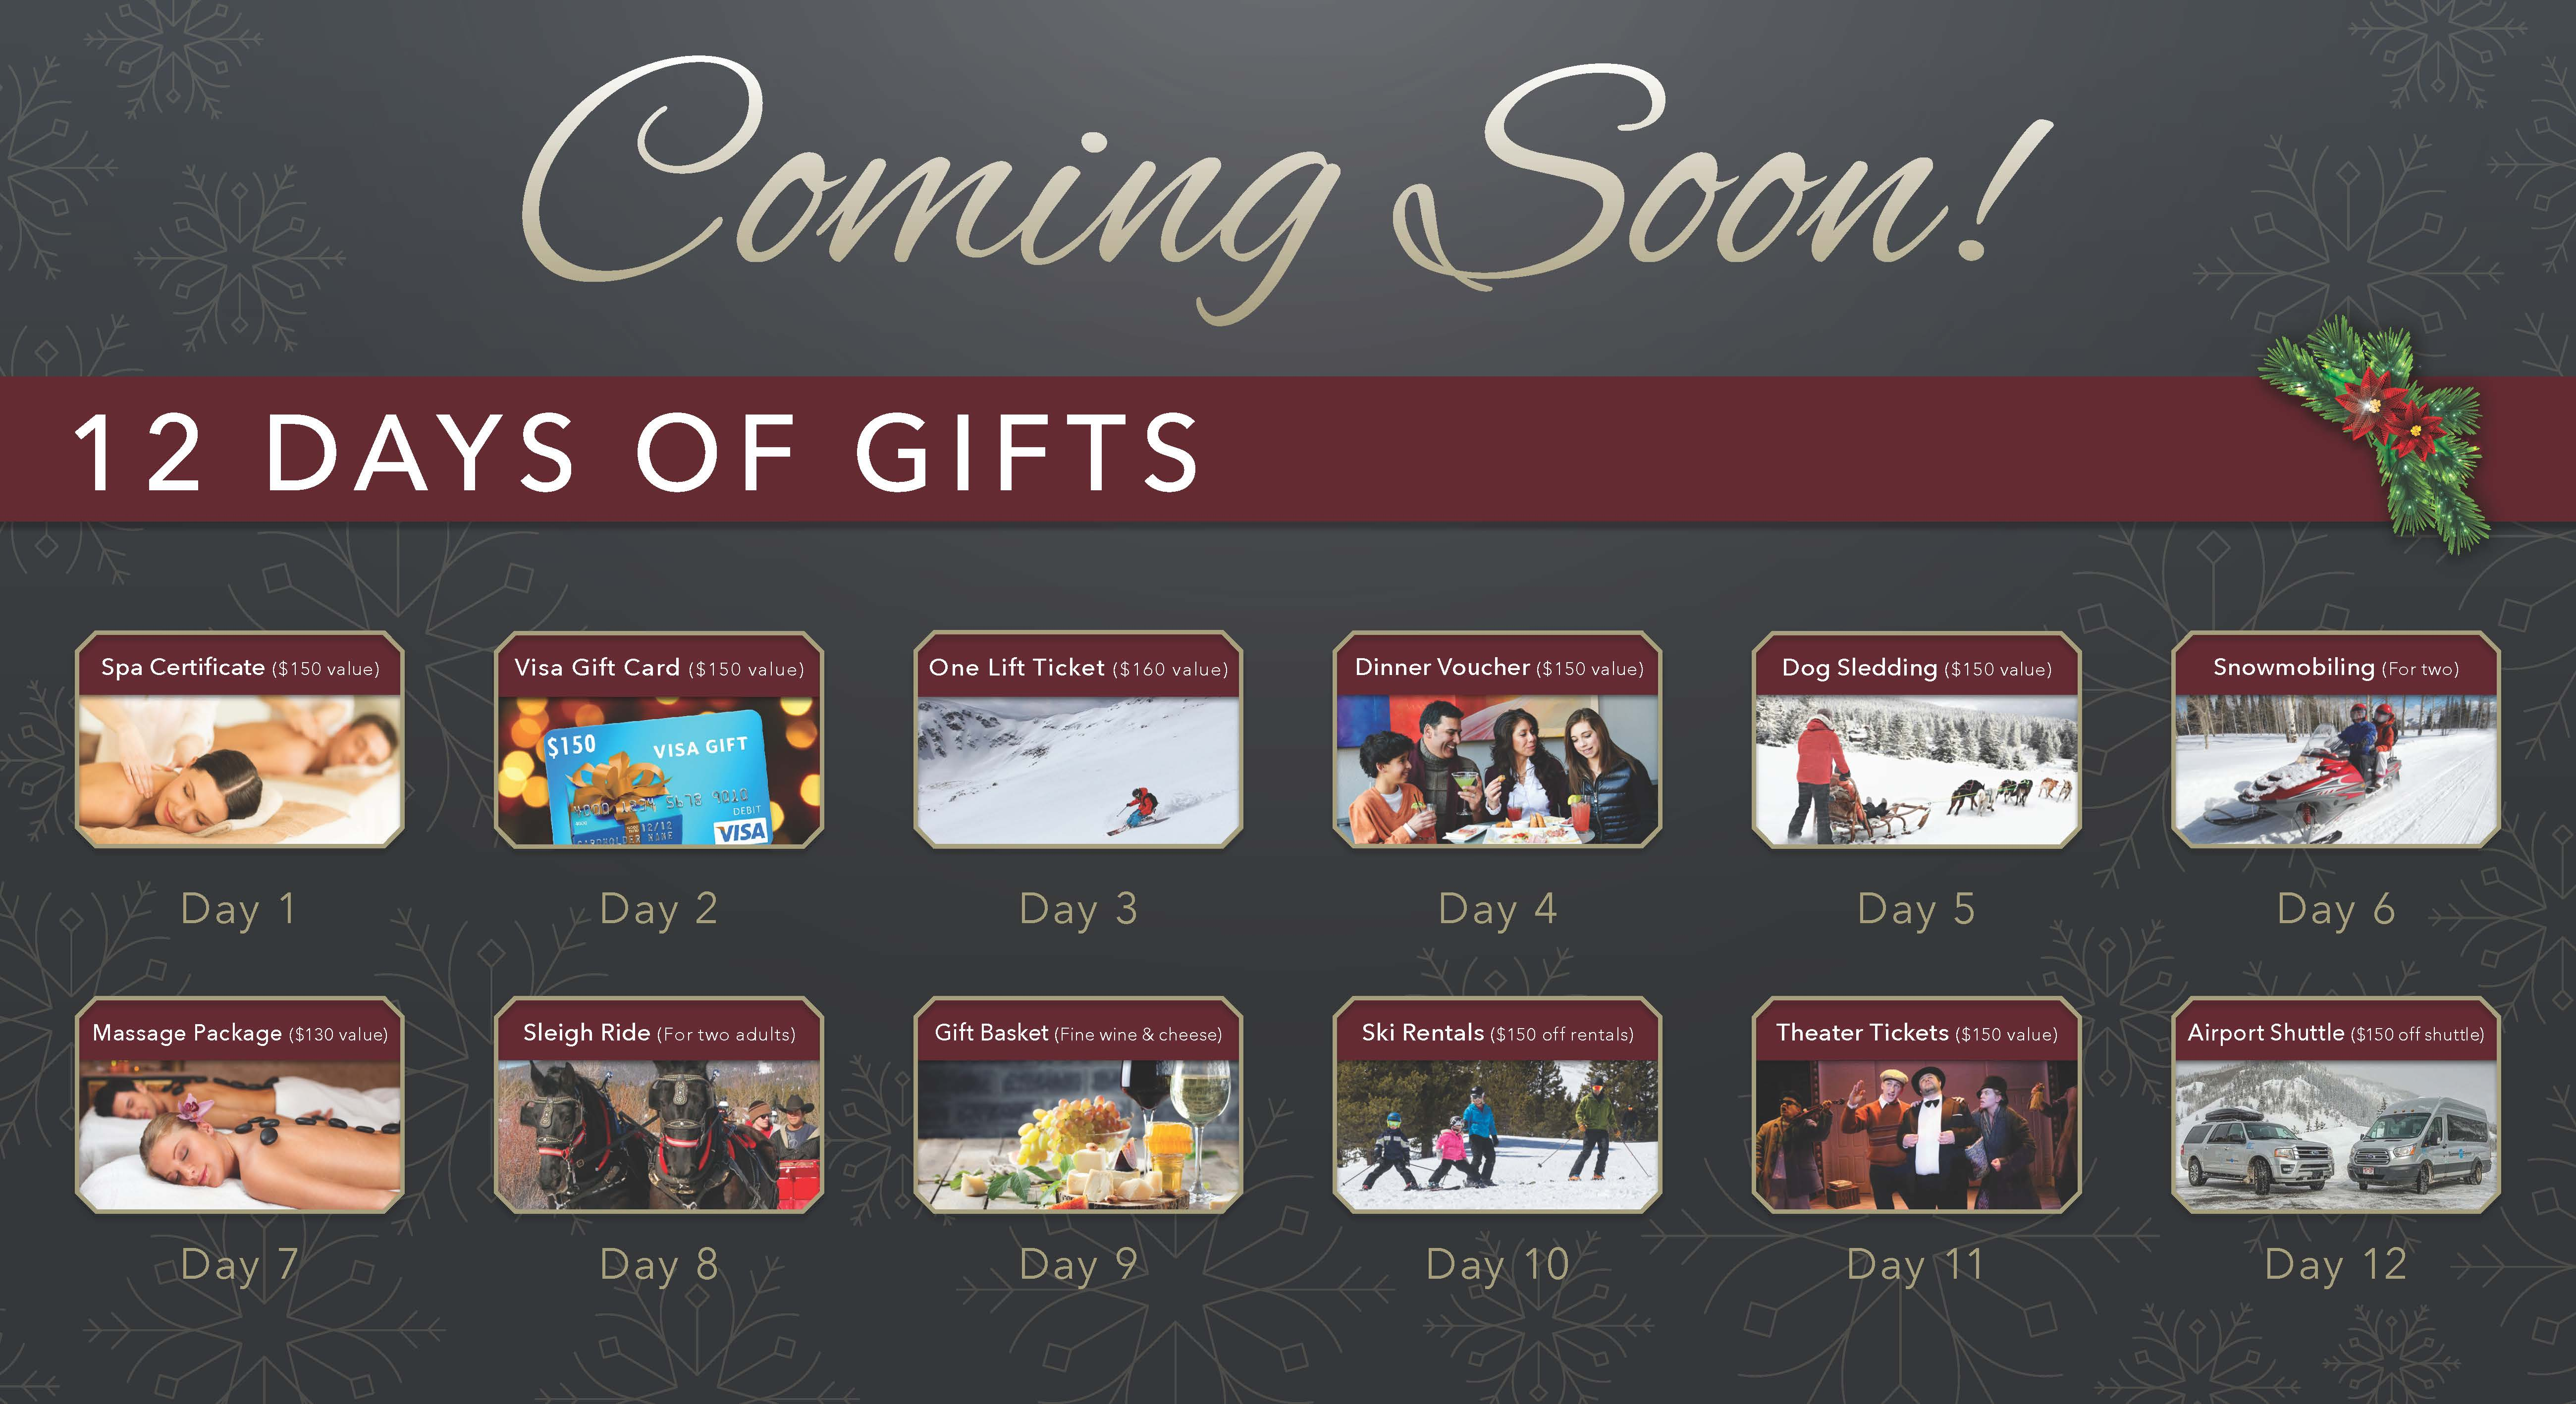 12 Days of Gifts Coming Soon!